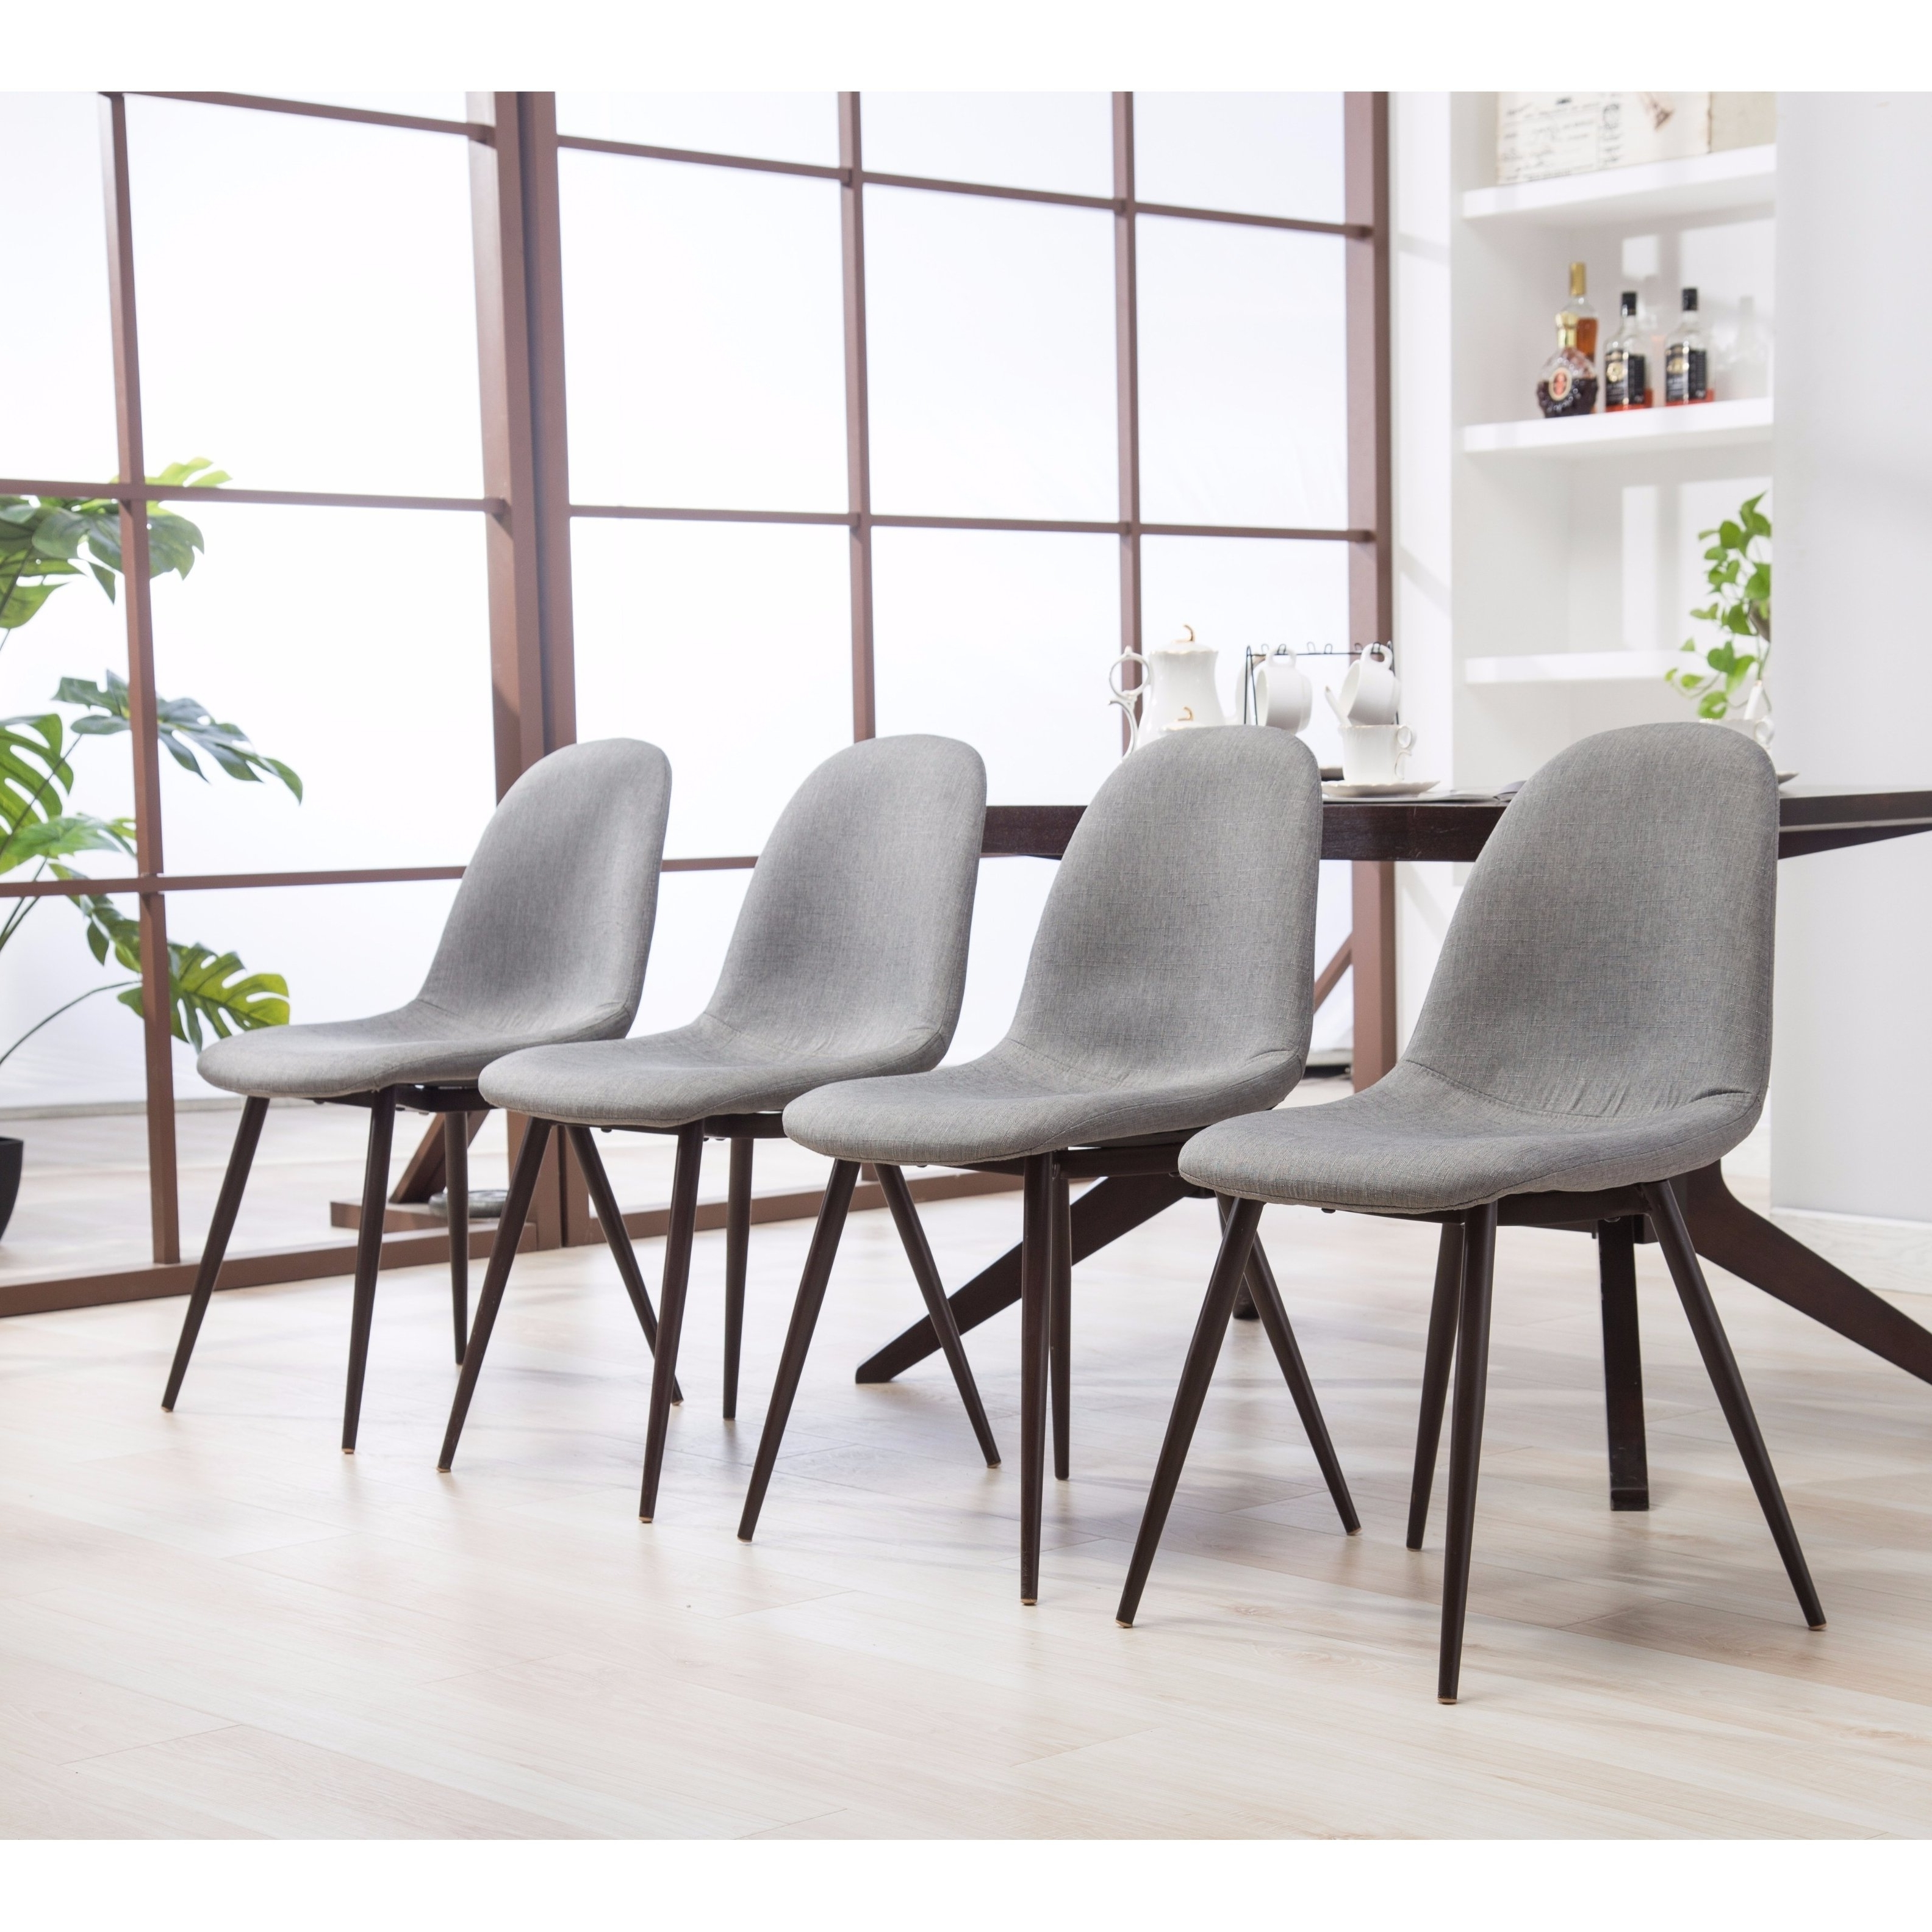 Widely Used Shop Lassan Modern Contemporary Blue Fabric Dining Chairs, Set Of 4 In Caden 7 Piece Dining Sets With Upholstered Side Chair (View 10 of 25)